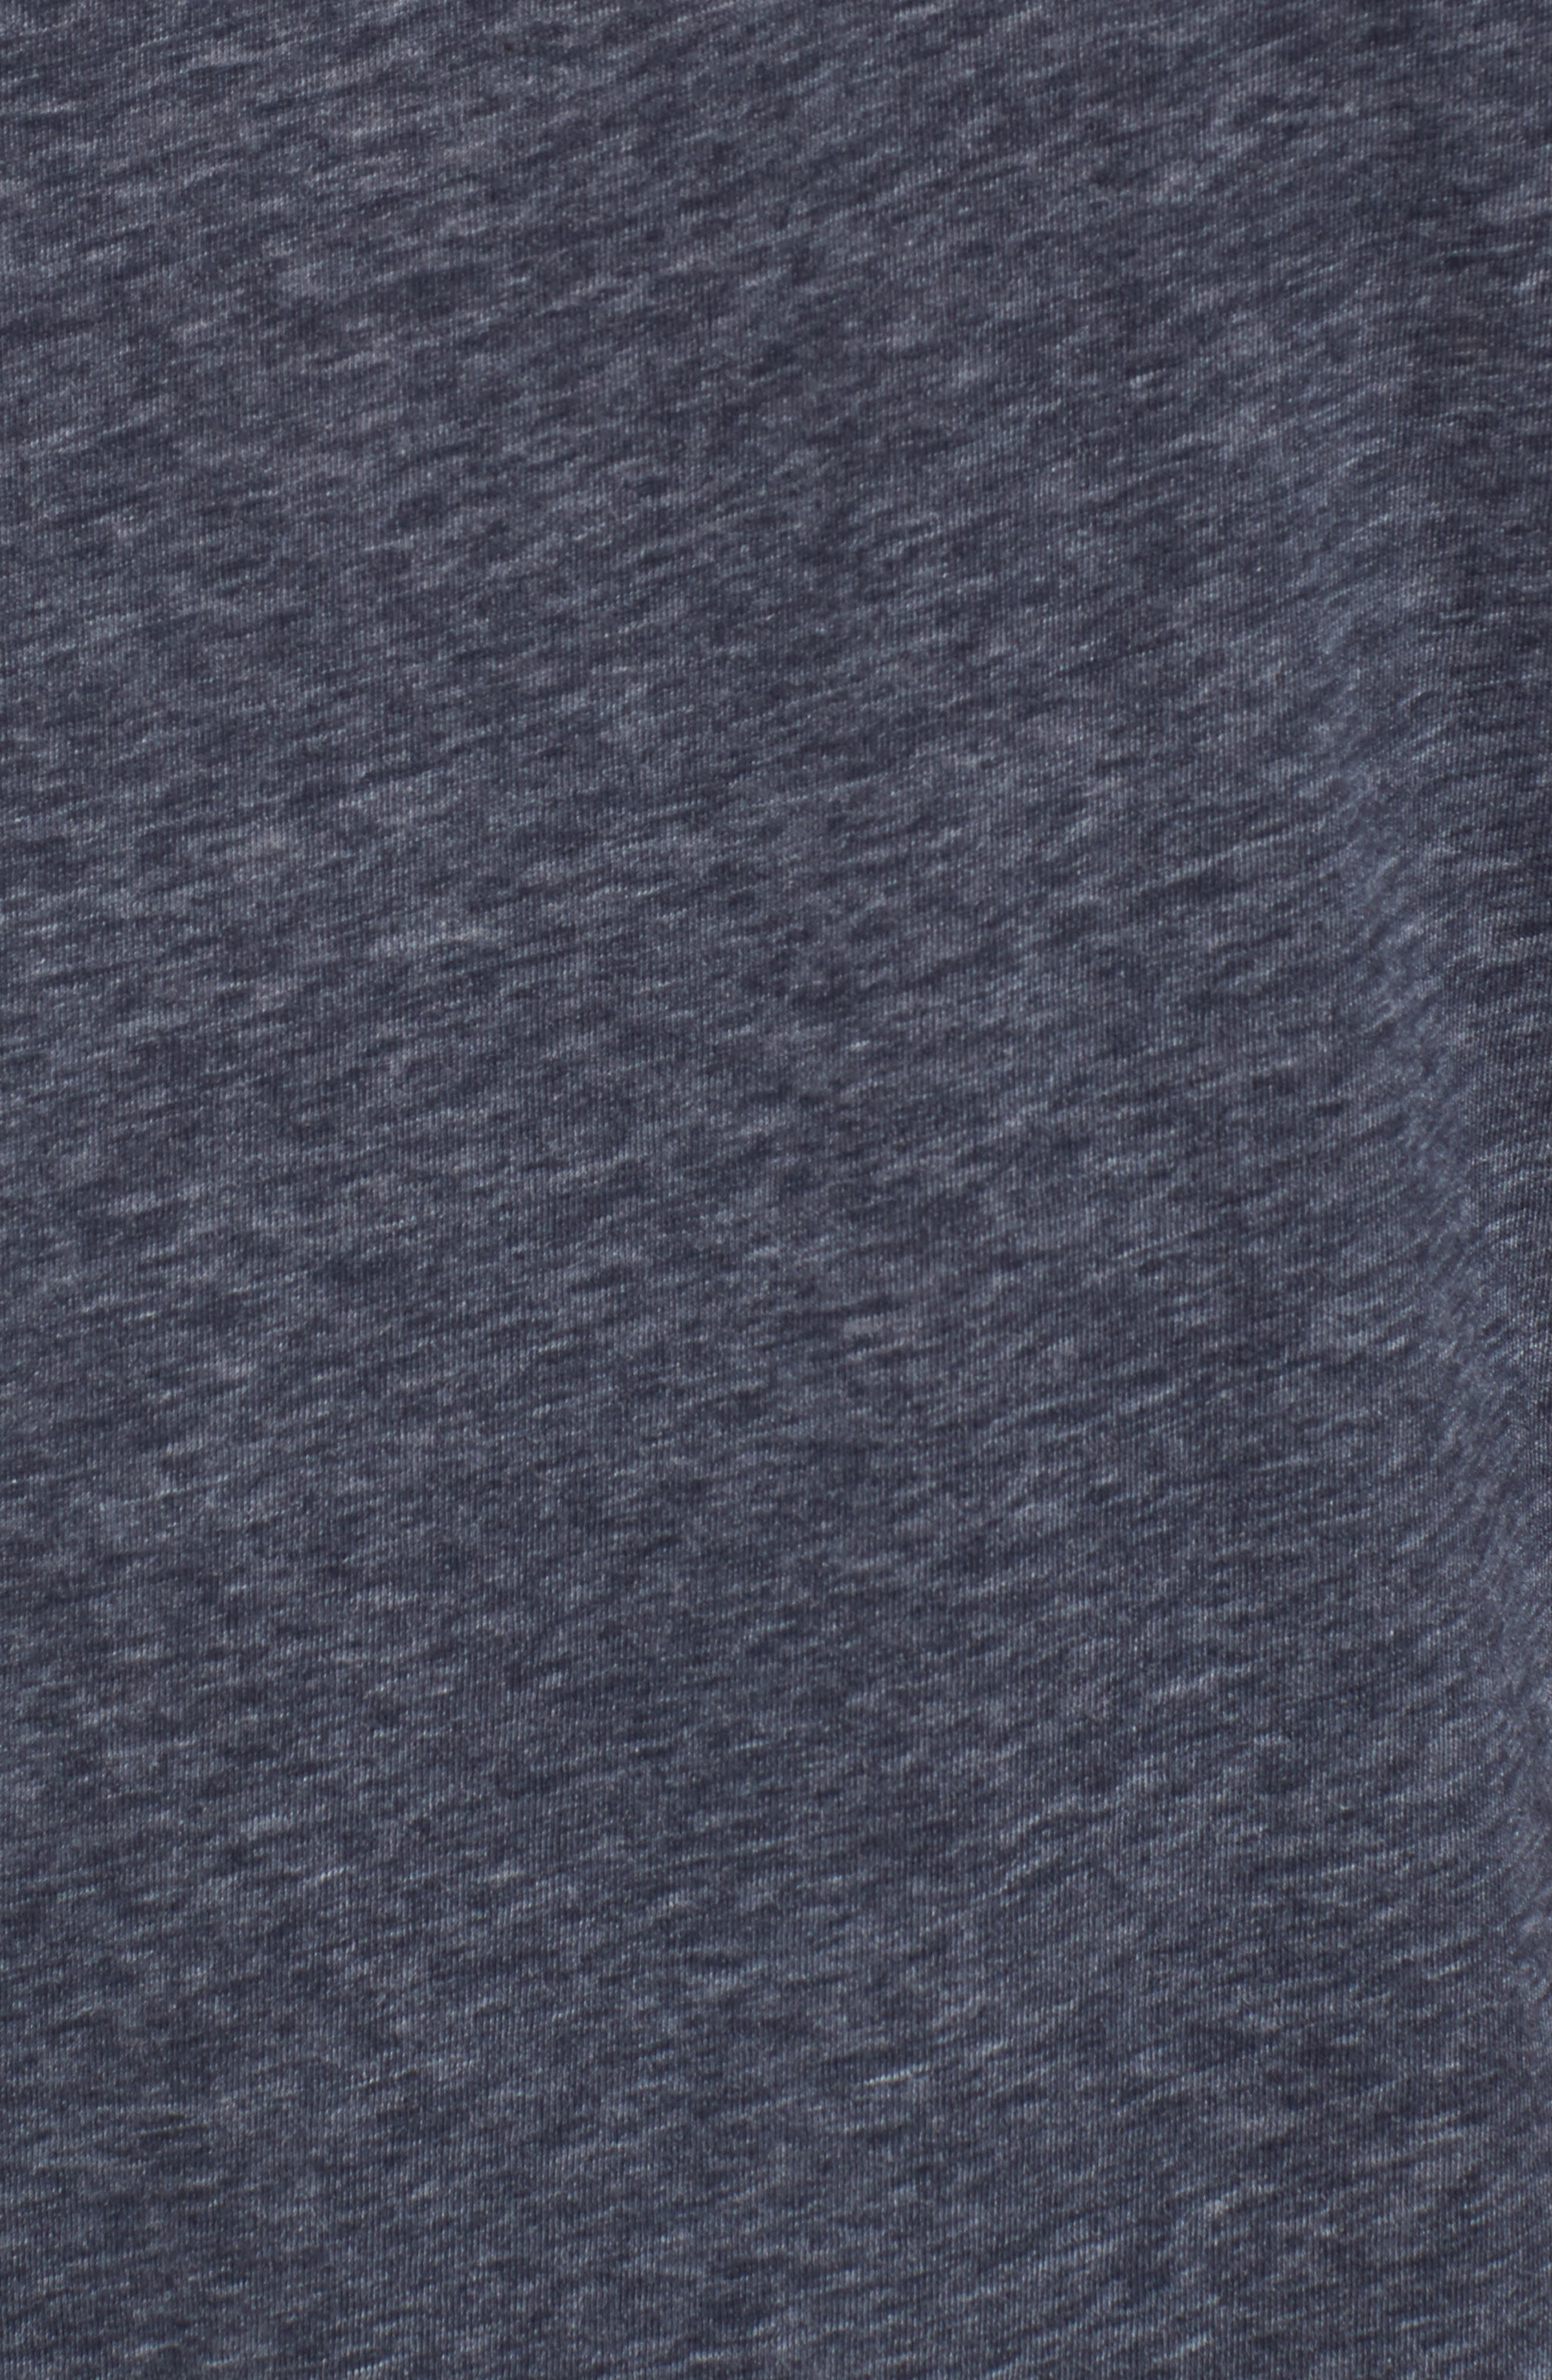 Recycled Cotton Blend T-Shirt,                             Alternate thumbnail 5, color,                             NAVY HEATHER